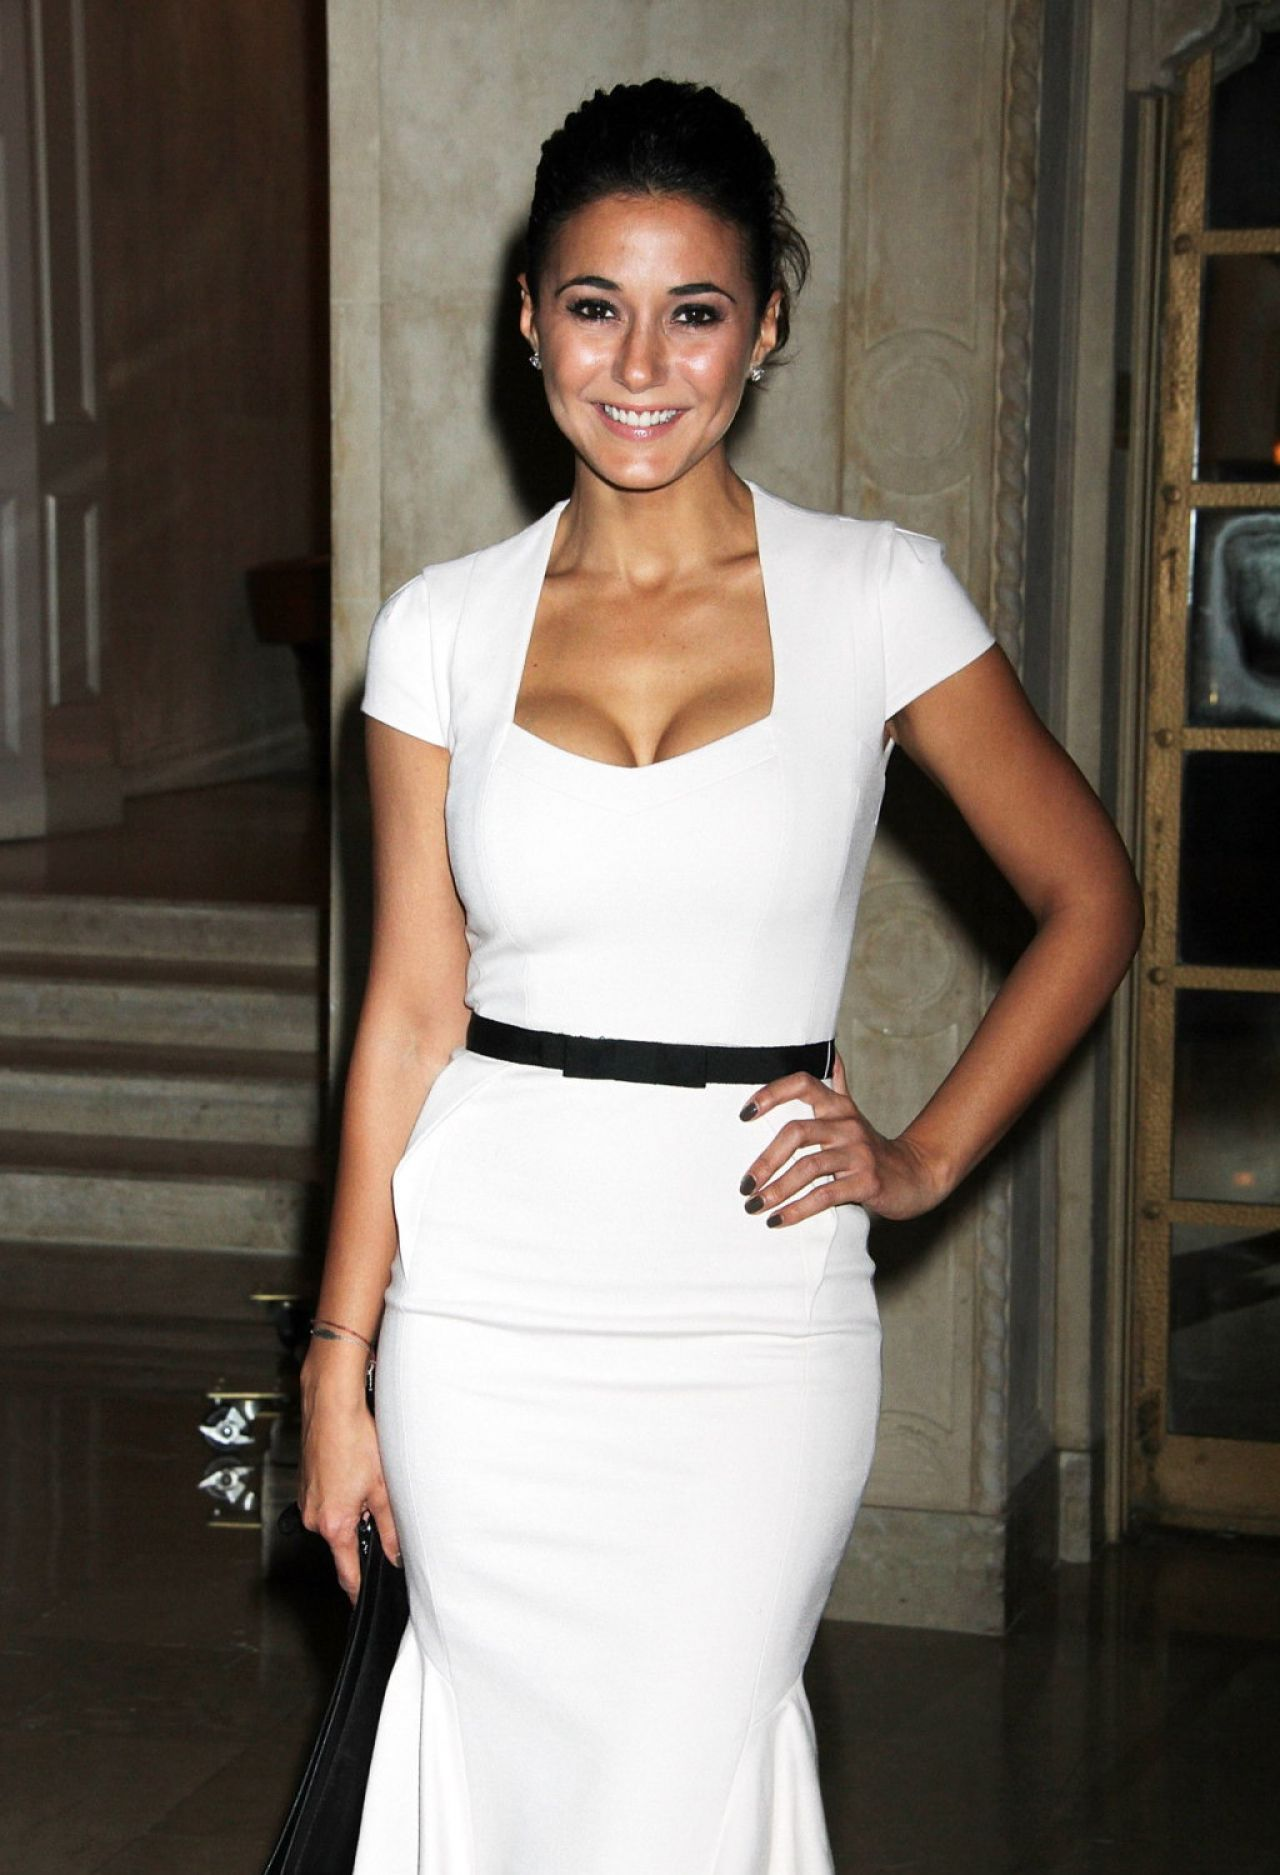 Emmanuelle Chriqui at Skin Cancer Foundation Gala in New York